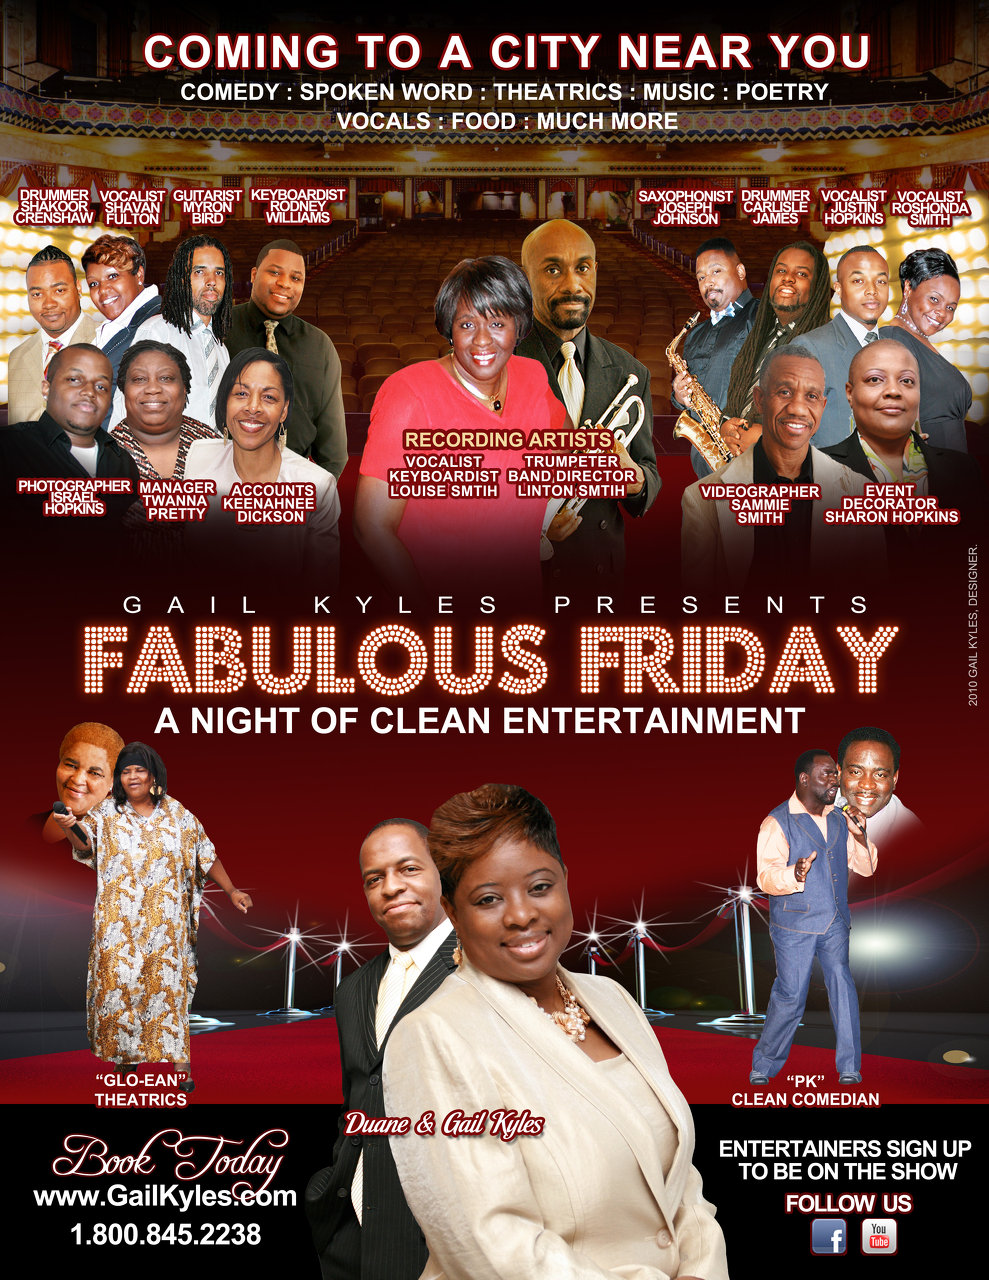 FABULOUS FRIDAY Booking Flyer